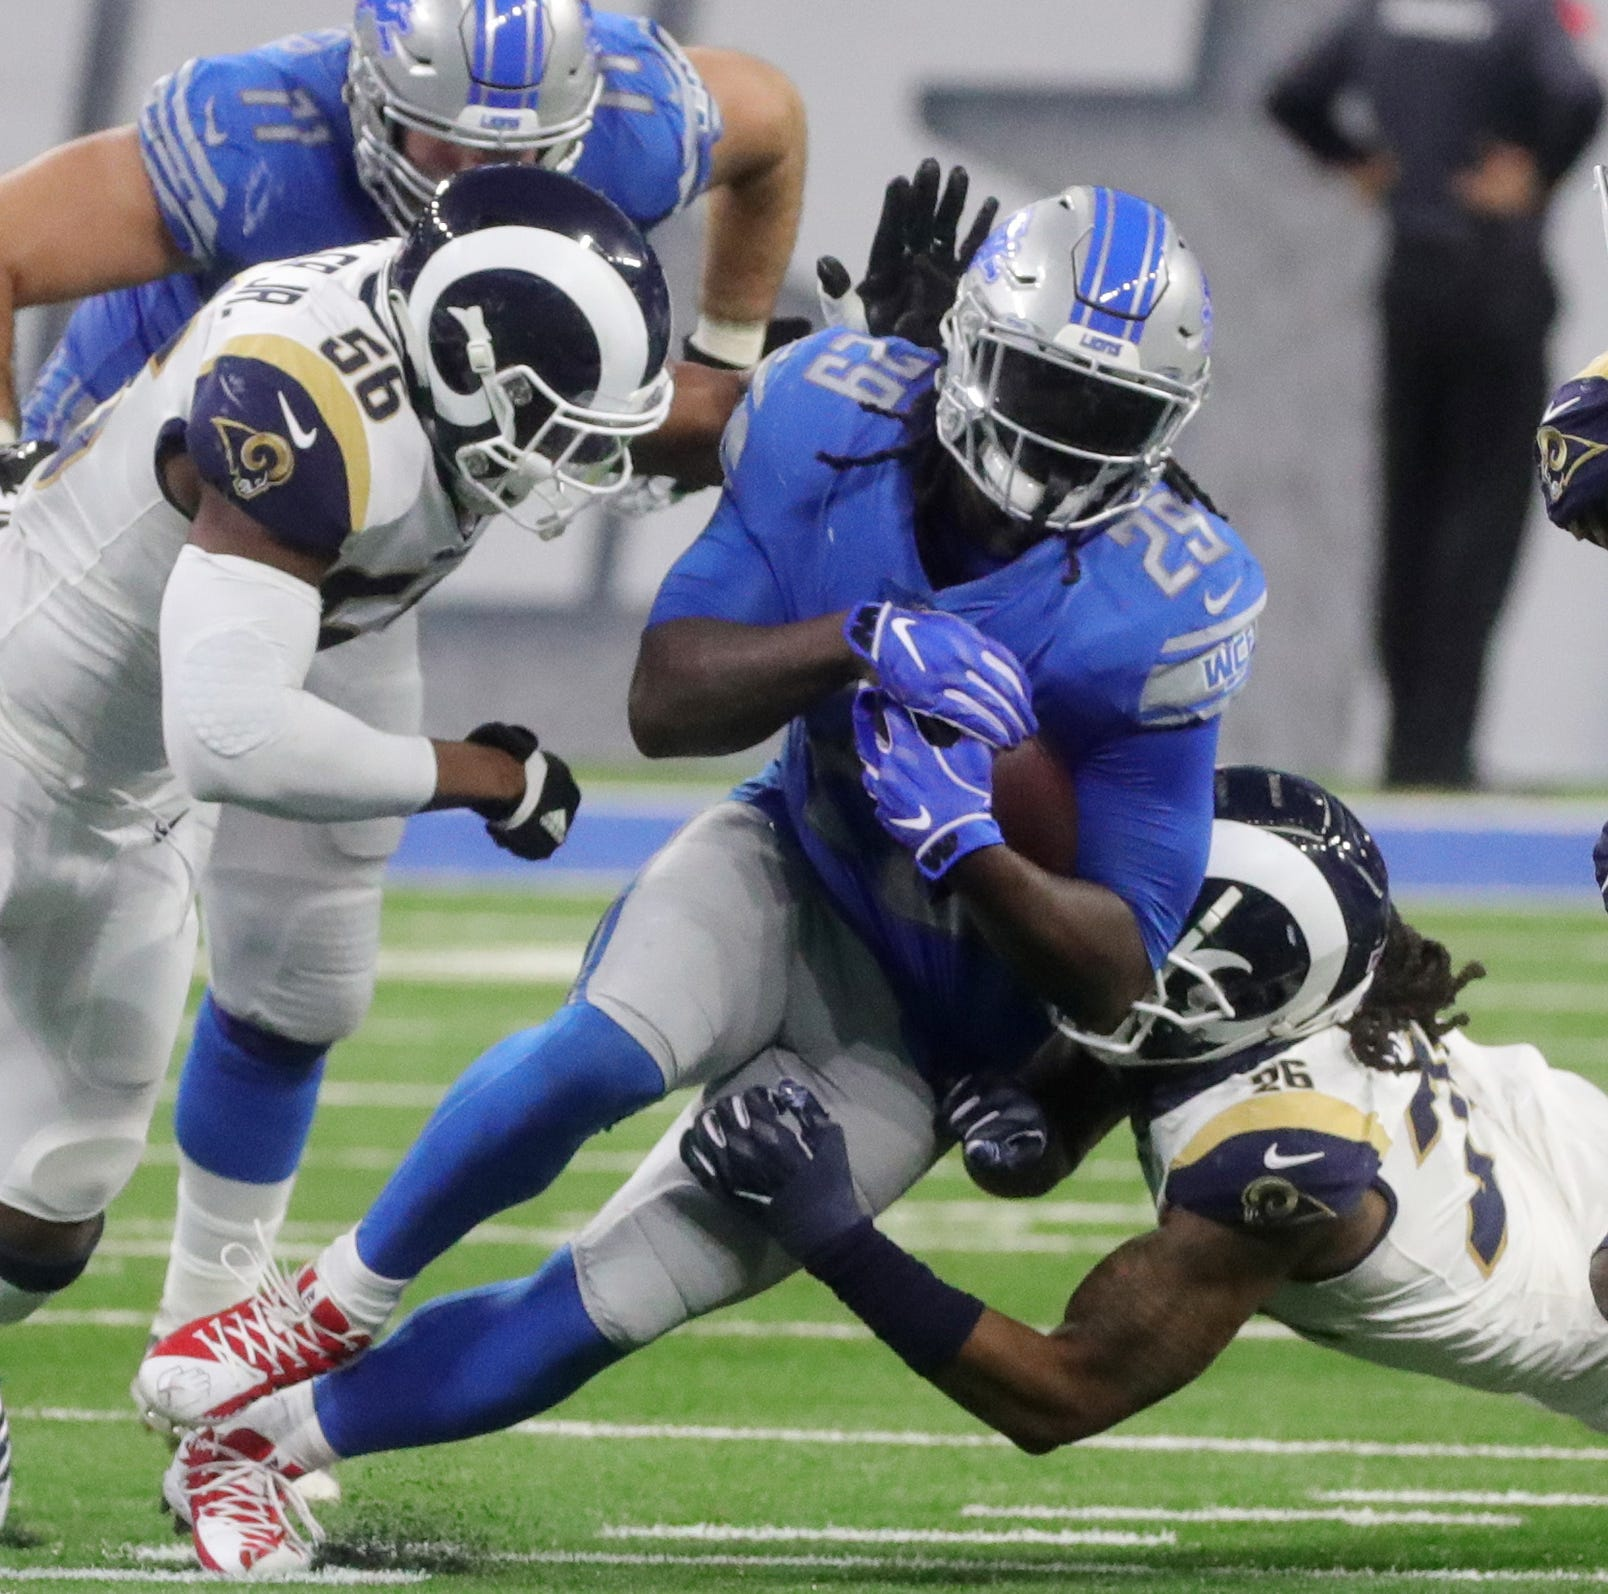 Detroit Lions' decimated offense 'better go live in reality'